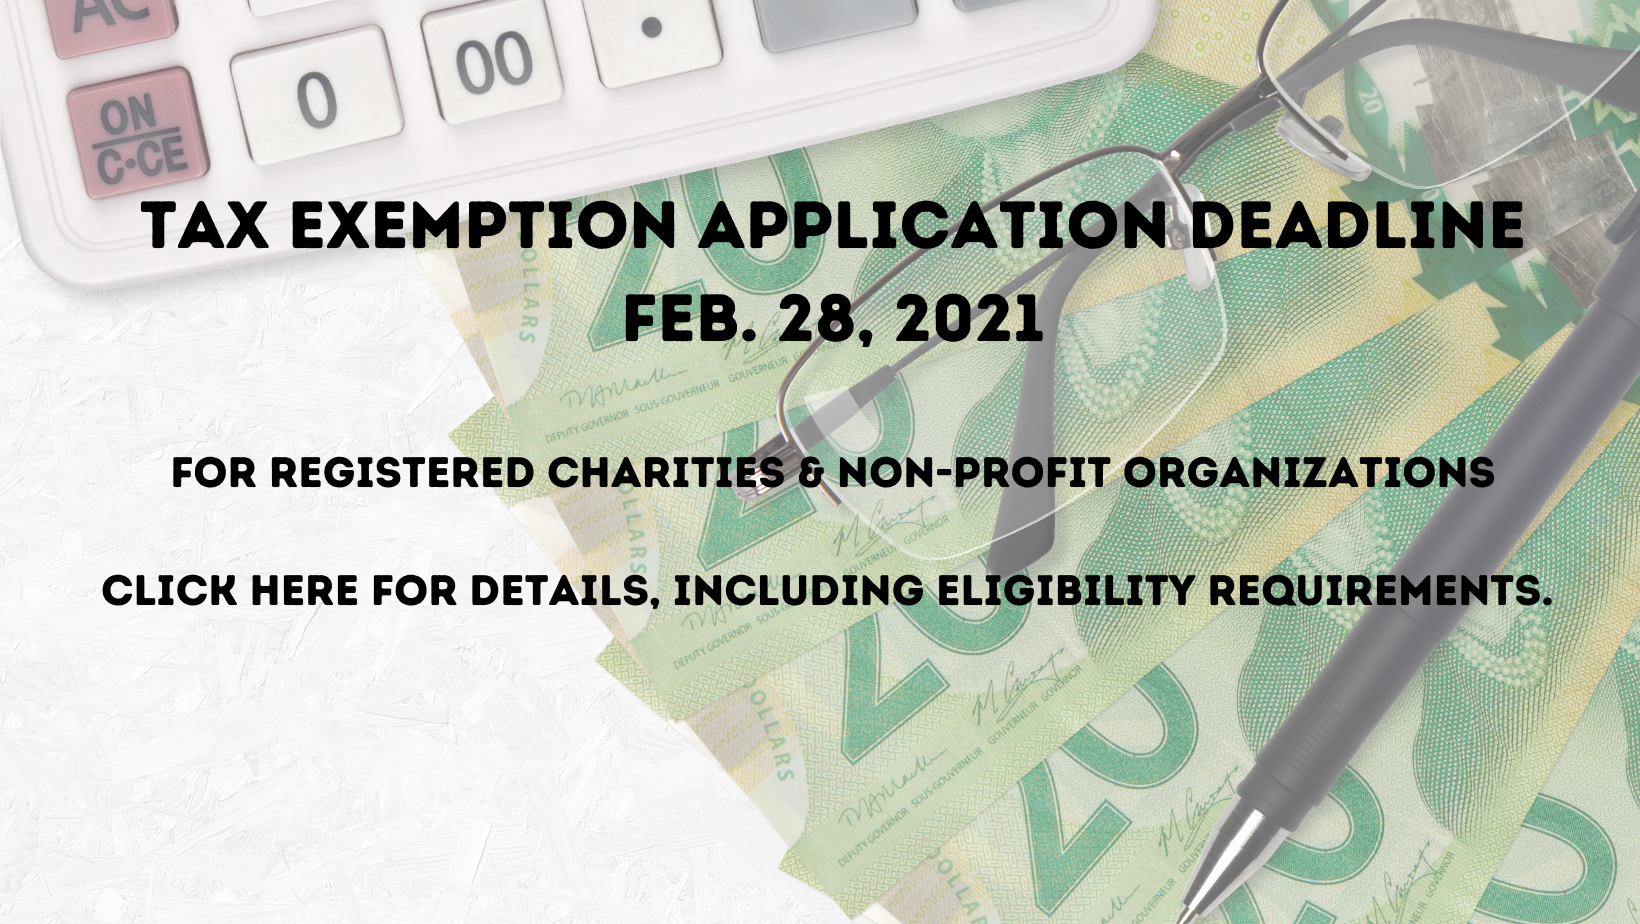 TAX EXEMPTION APPLICATION DEADLINE